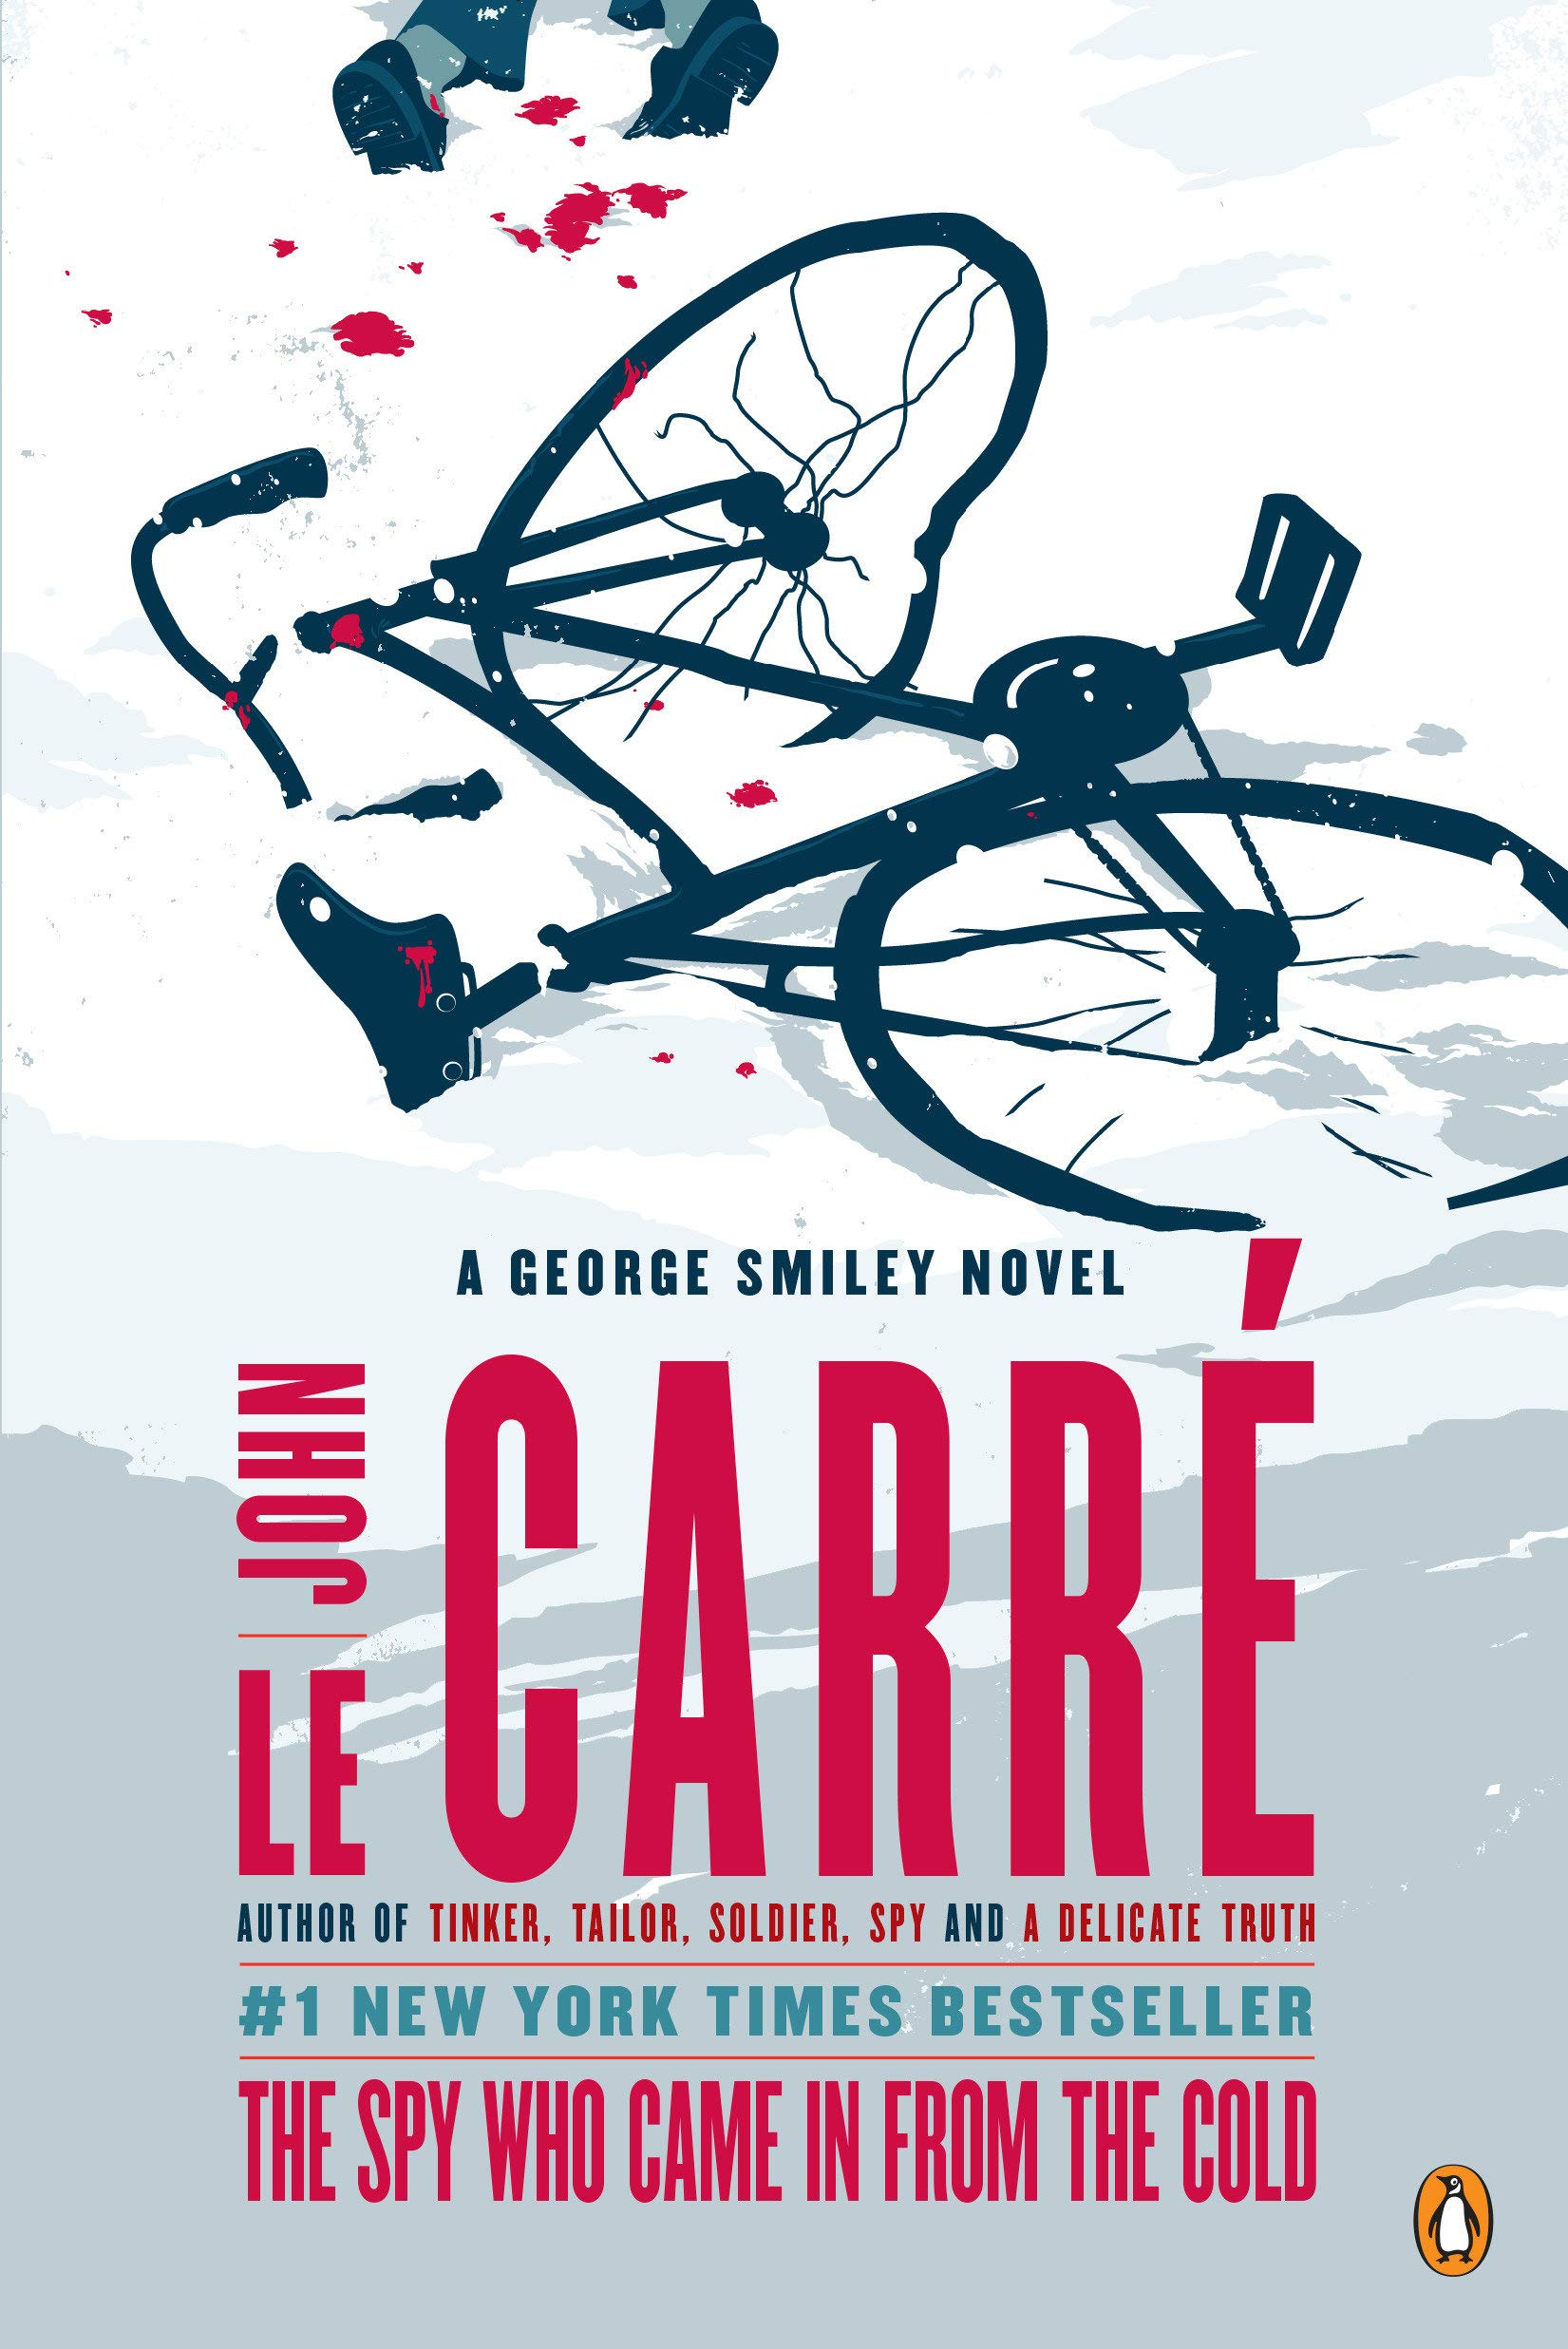 The Spy Who Came in from the Cold: A George Smiley Novel (George Smiley Novels) ebook